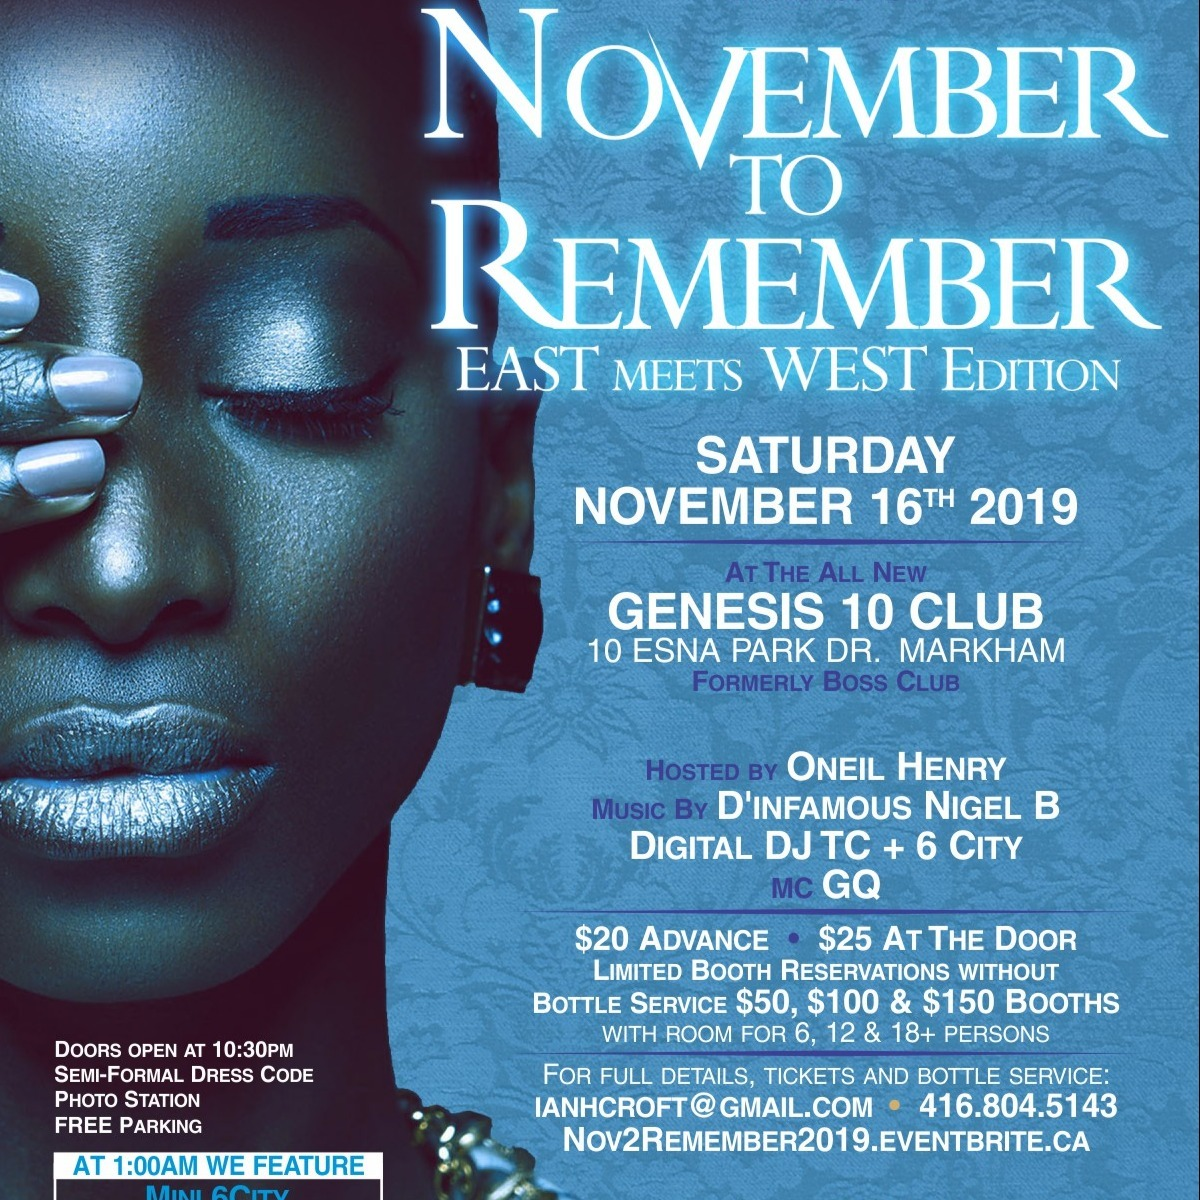 November 2 Remember - East meets West Edition